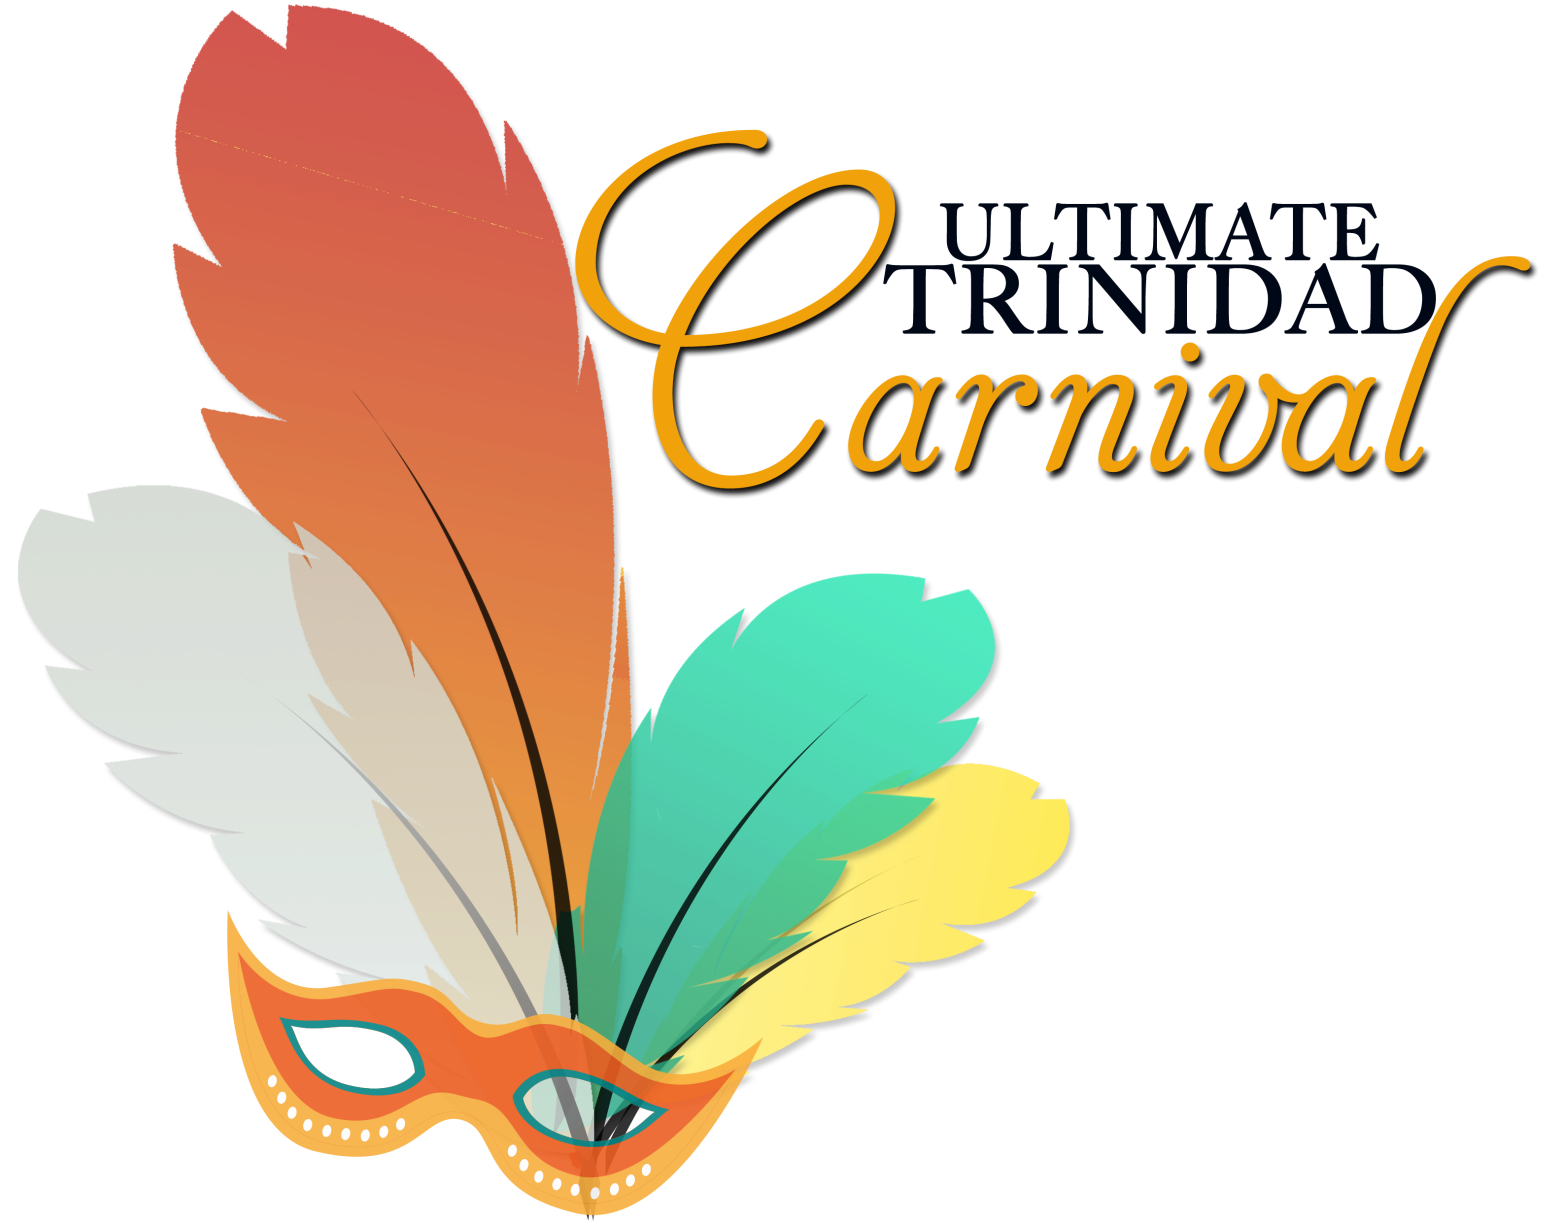 Carnival clipart sign carnival. Ultimate trinidad made for